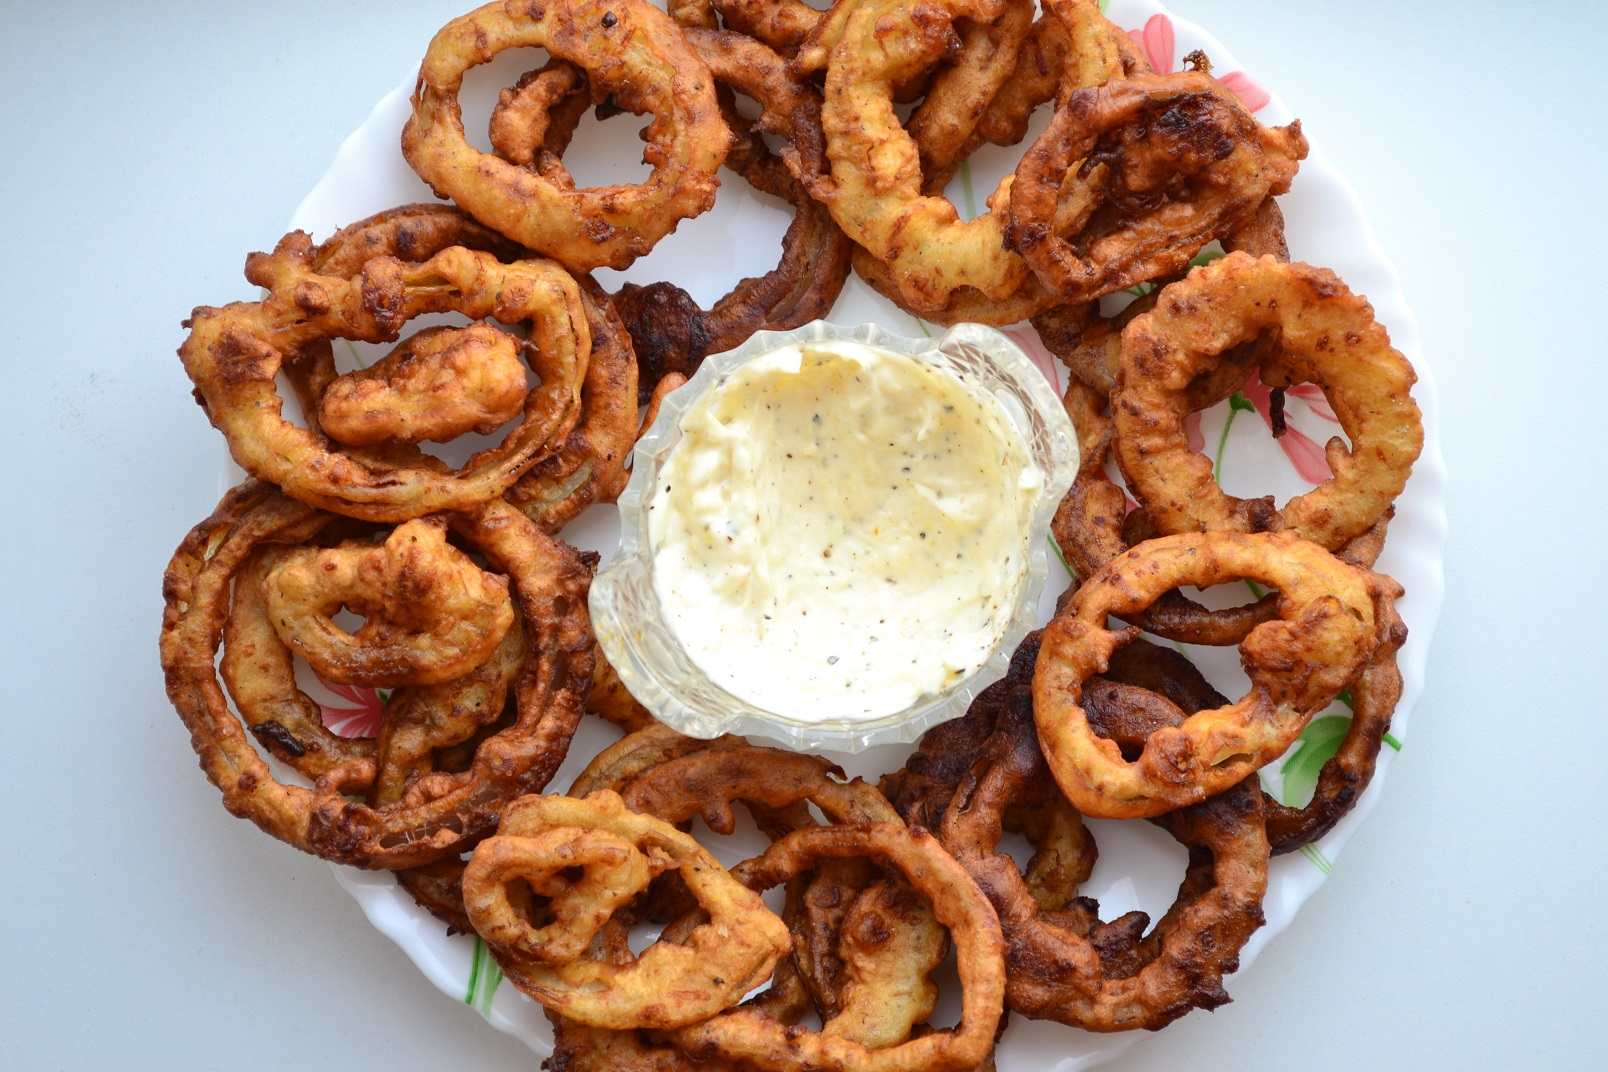 Onion rings in cheese batter